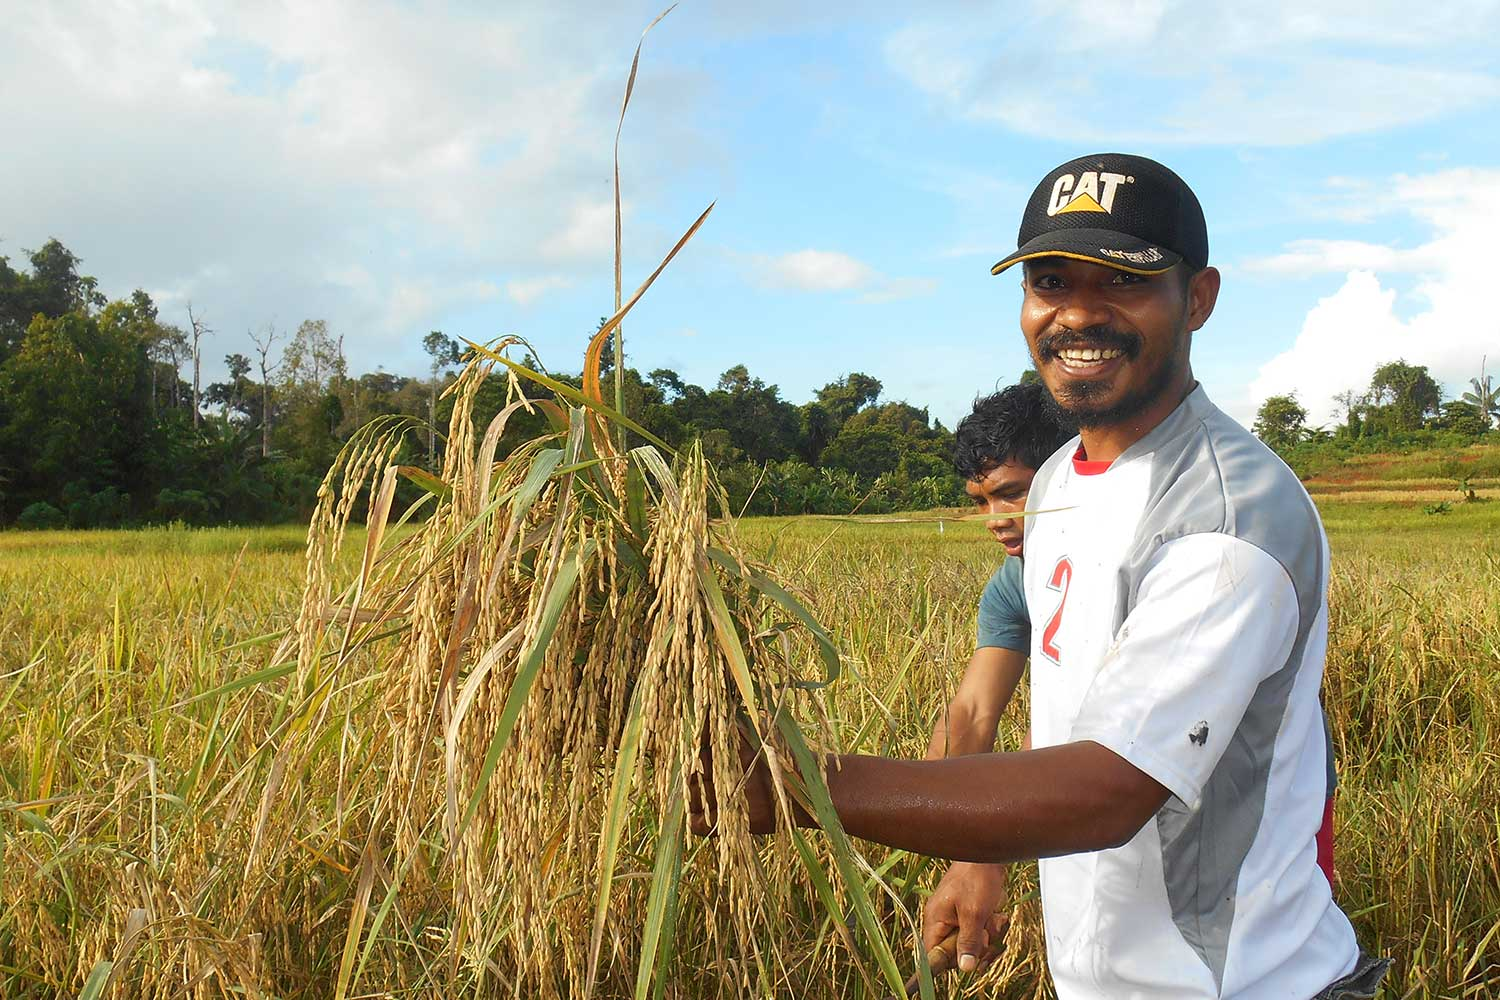 KORINDO Assists Farmers to Manage Farmland in Papua